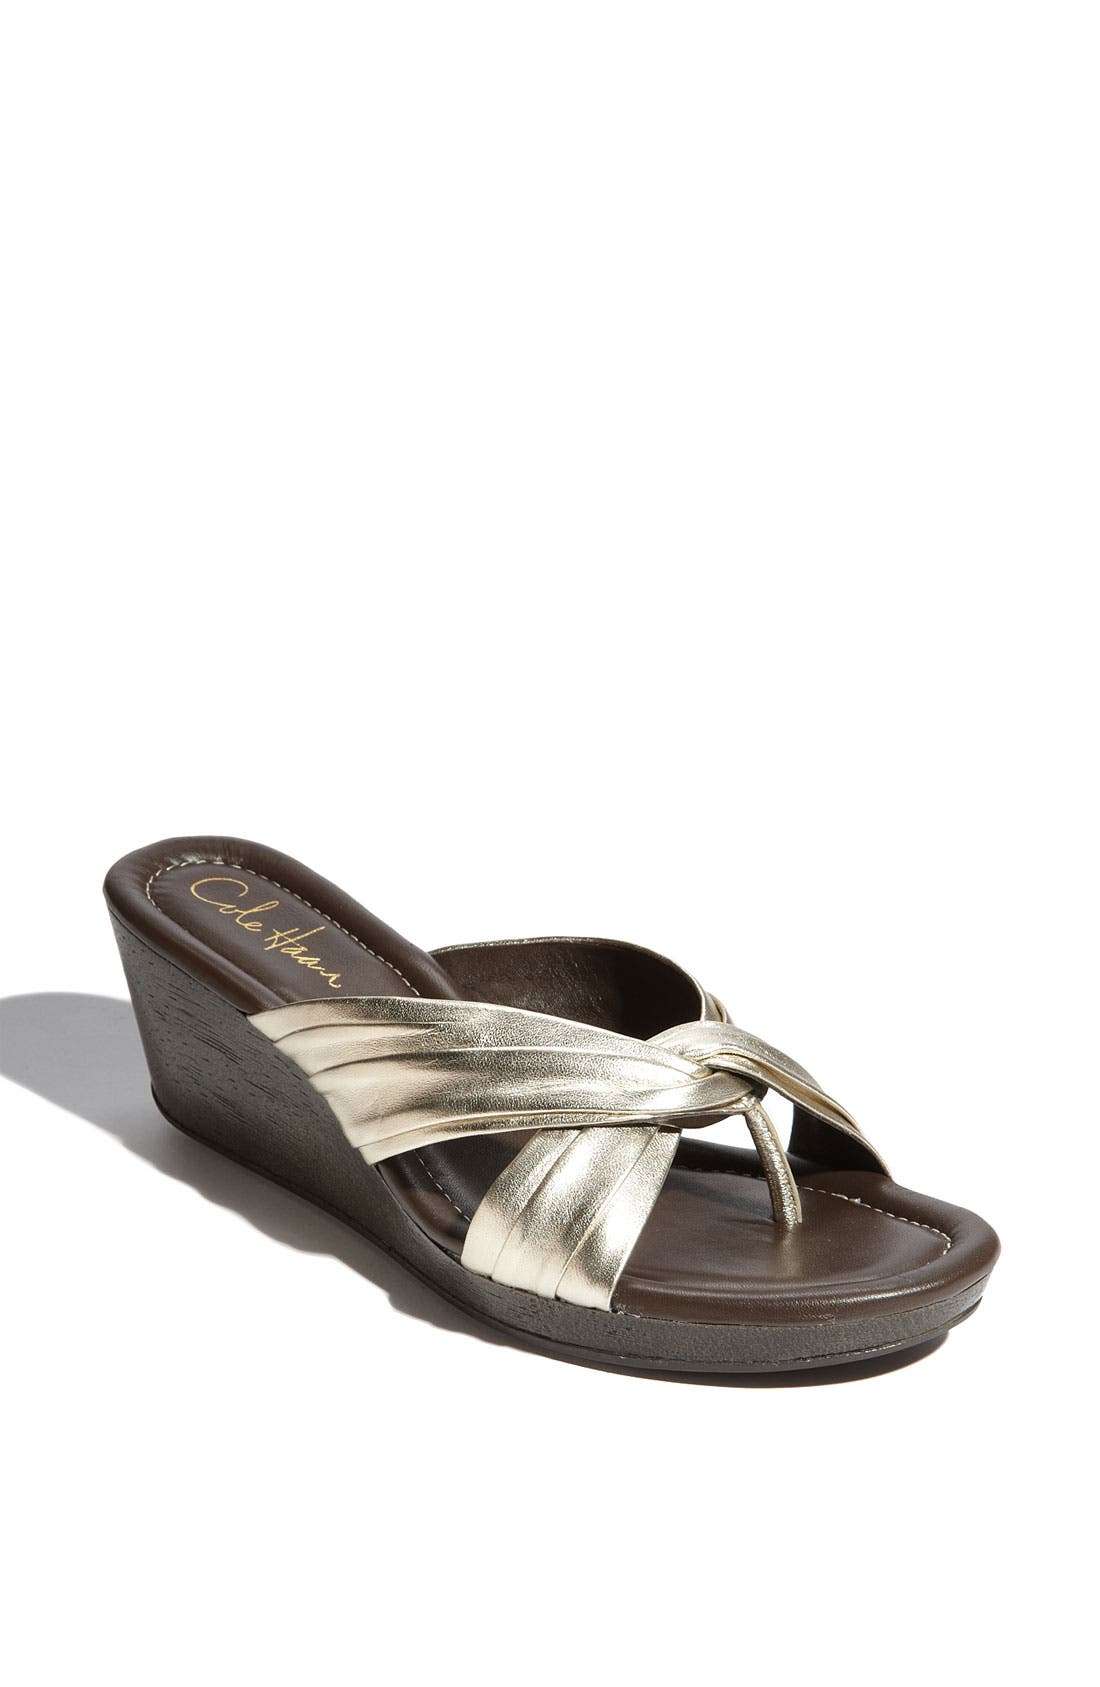 Main Image - Cole Haan 'Air Eden' Thong Sandal